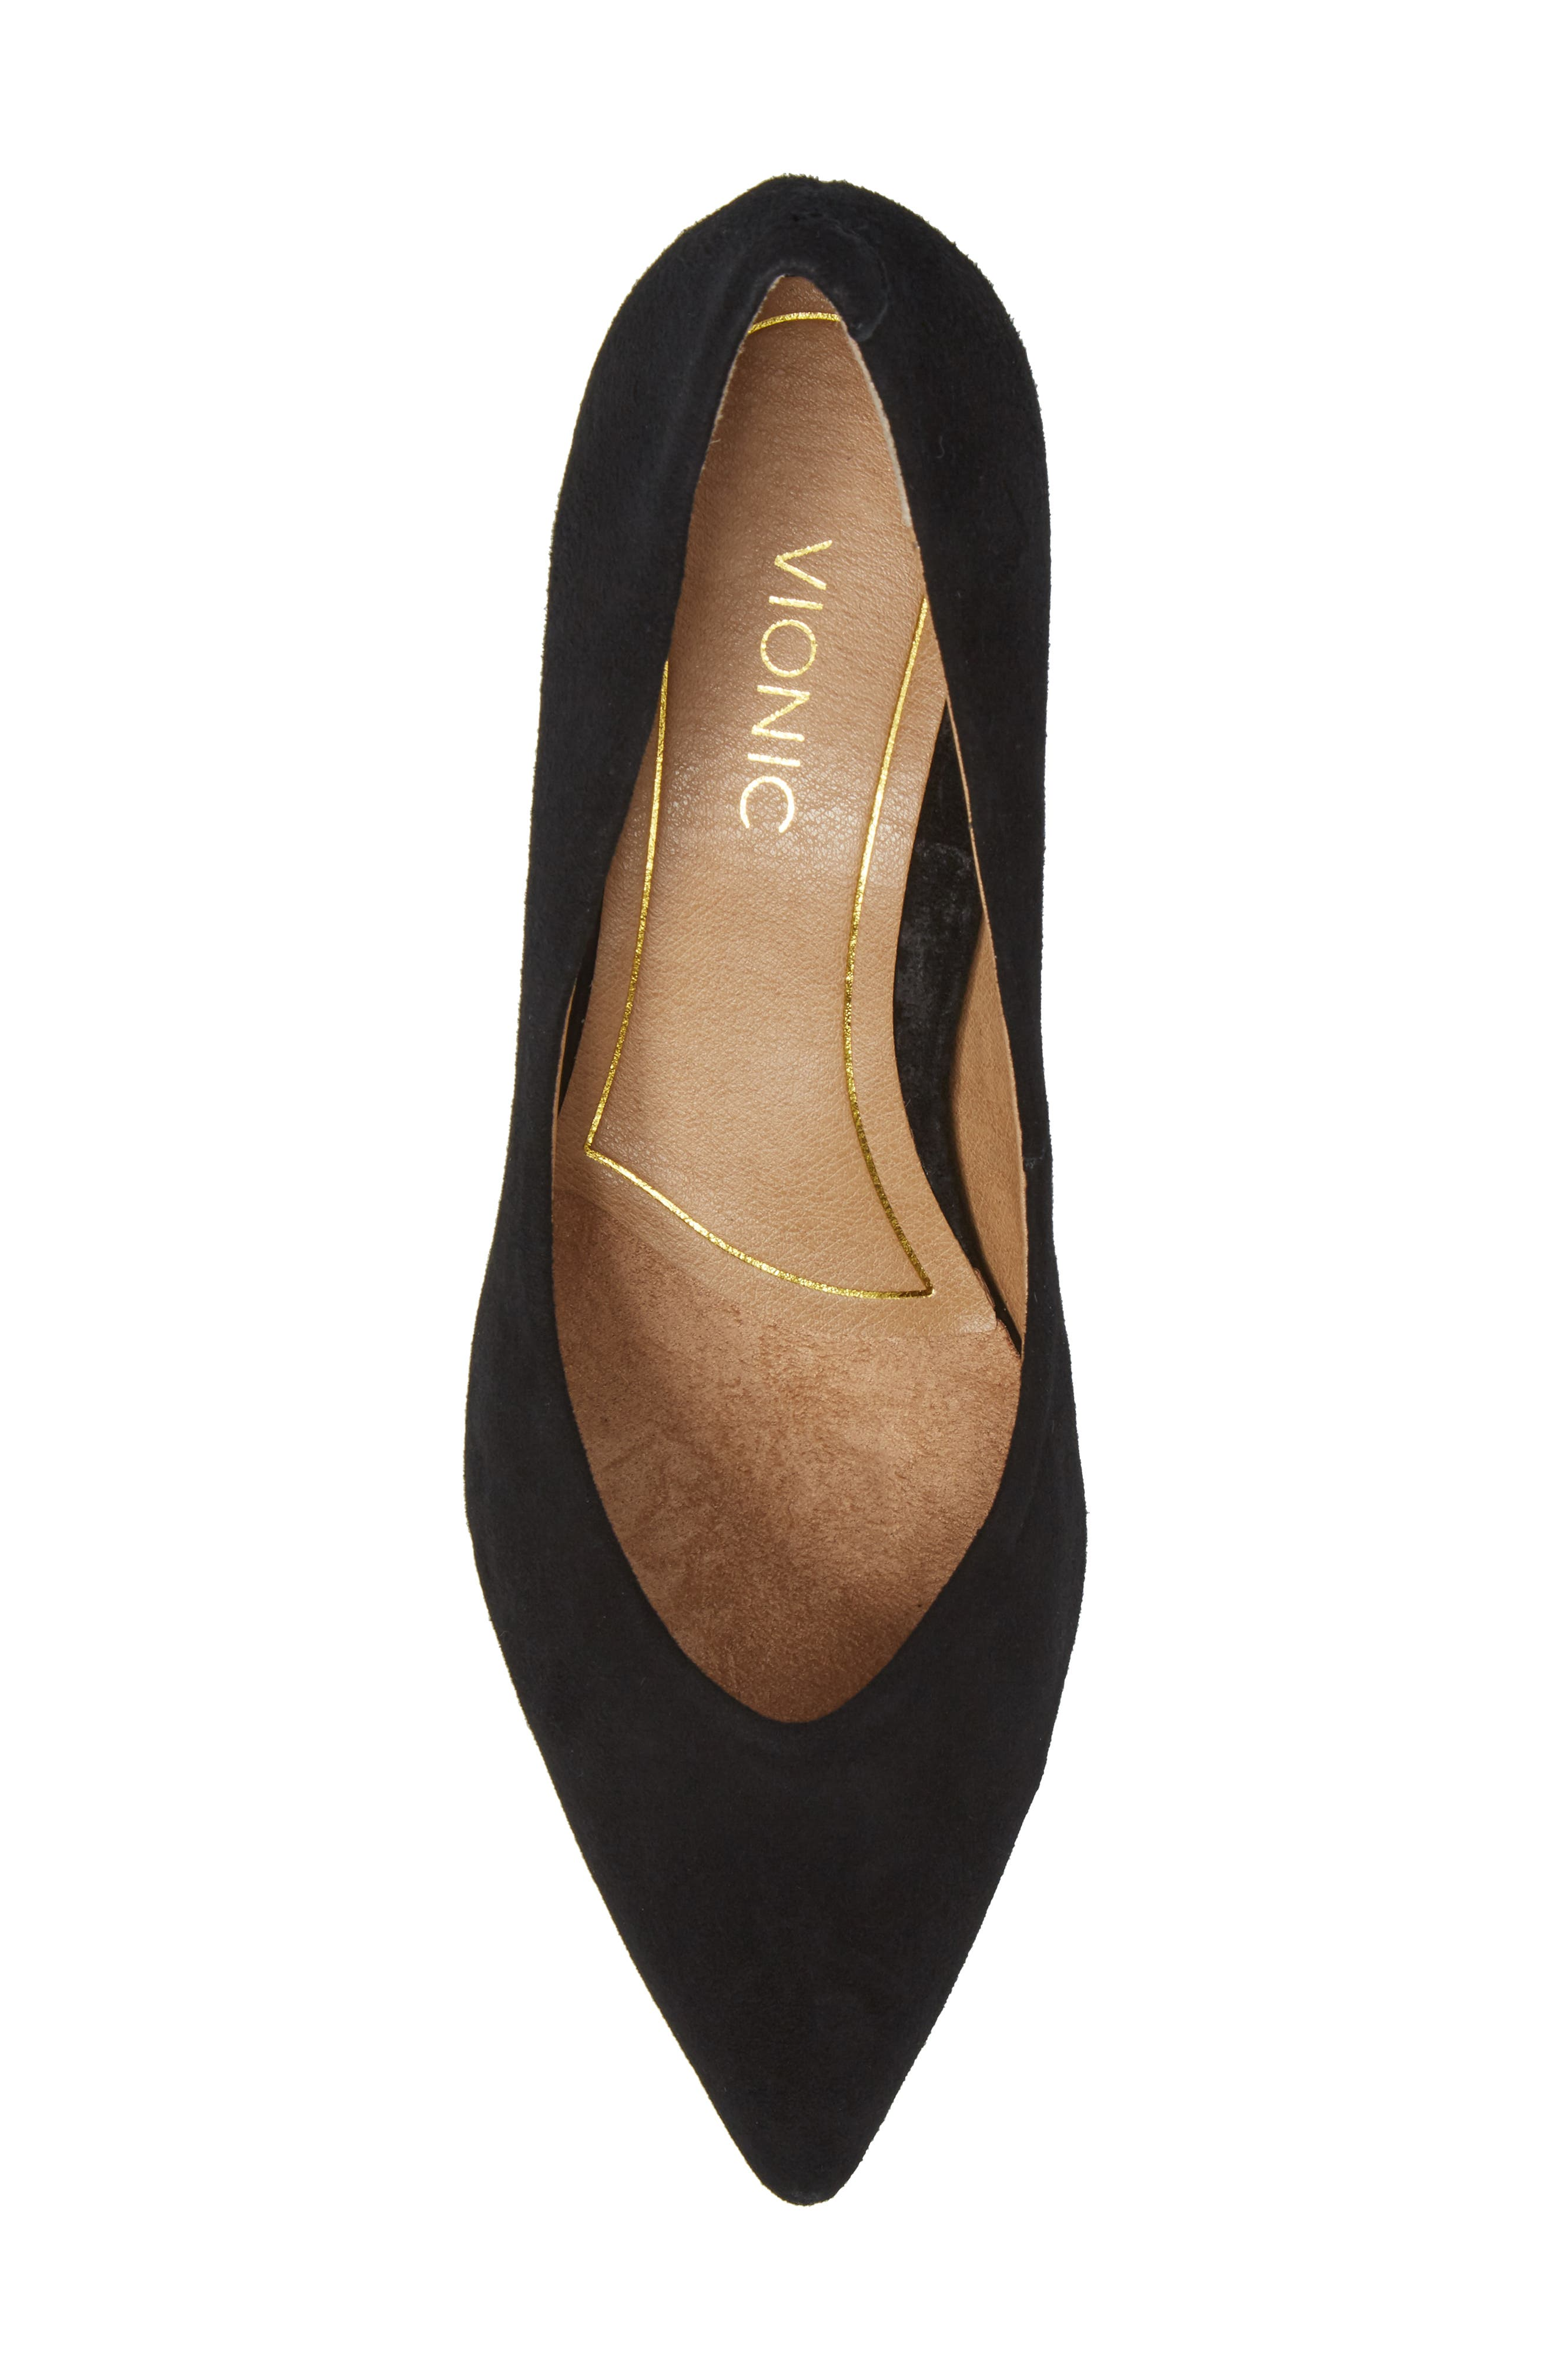 Josie Kitten Heel Pump,                             Alternate thumbnail 5, color,                             BLACK SUEDE